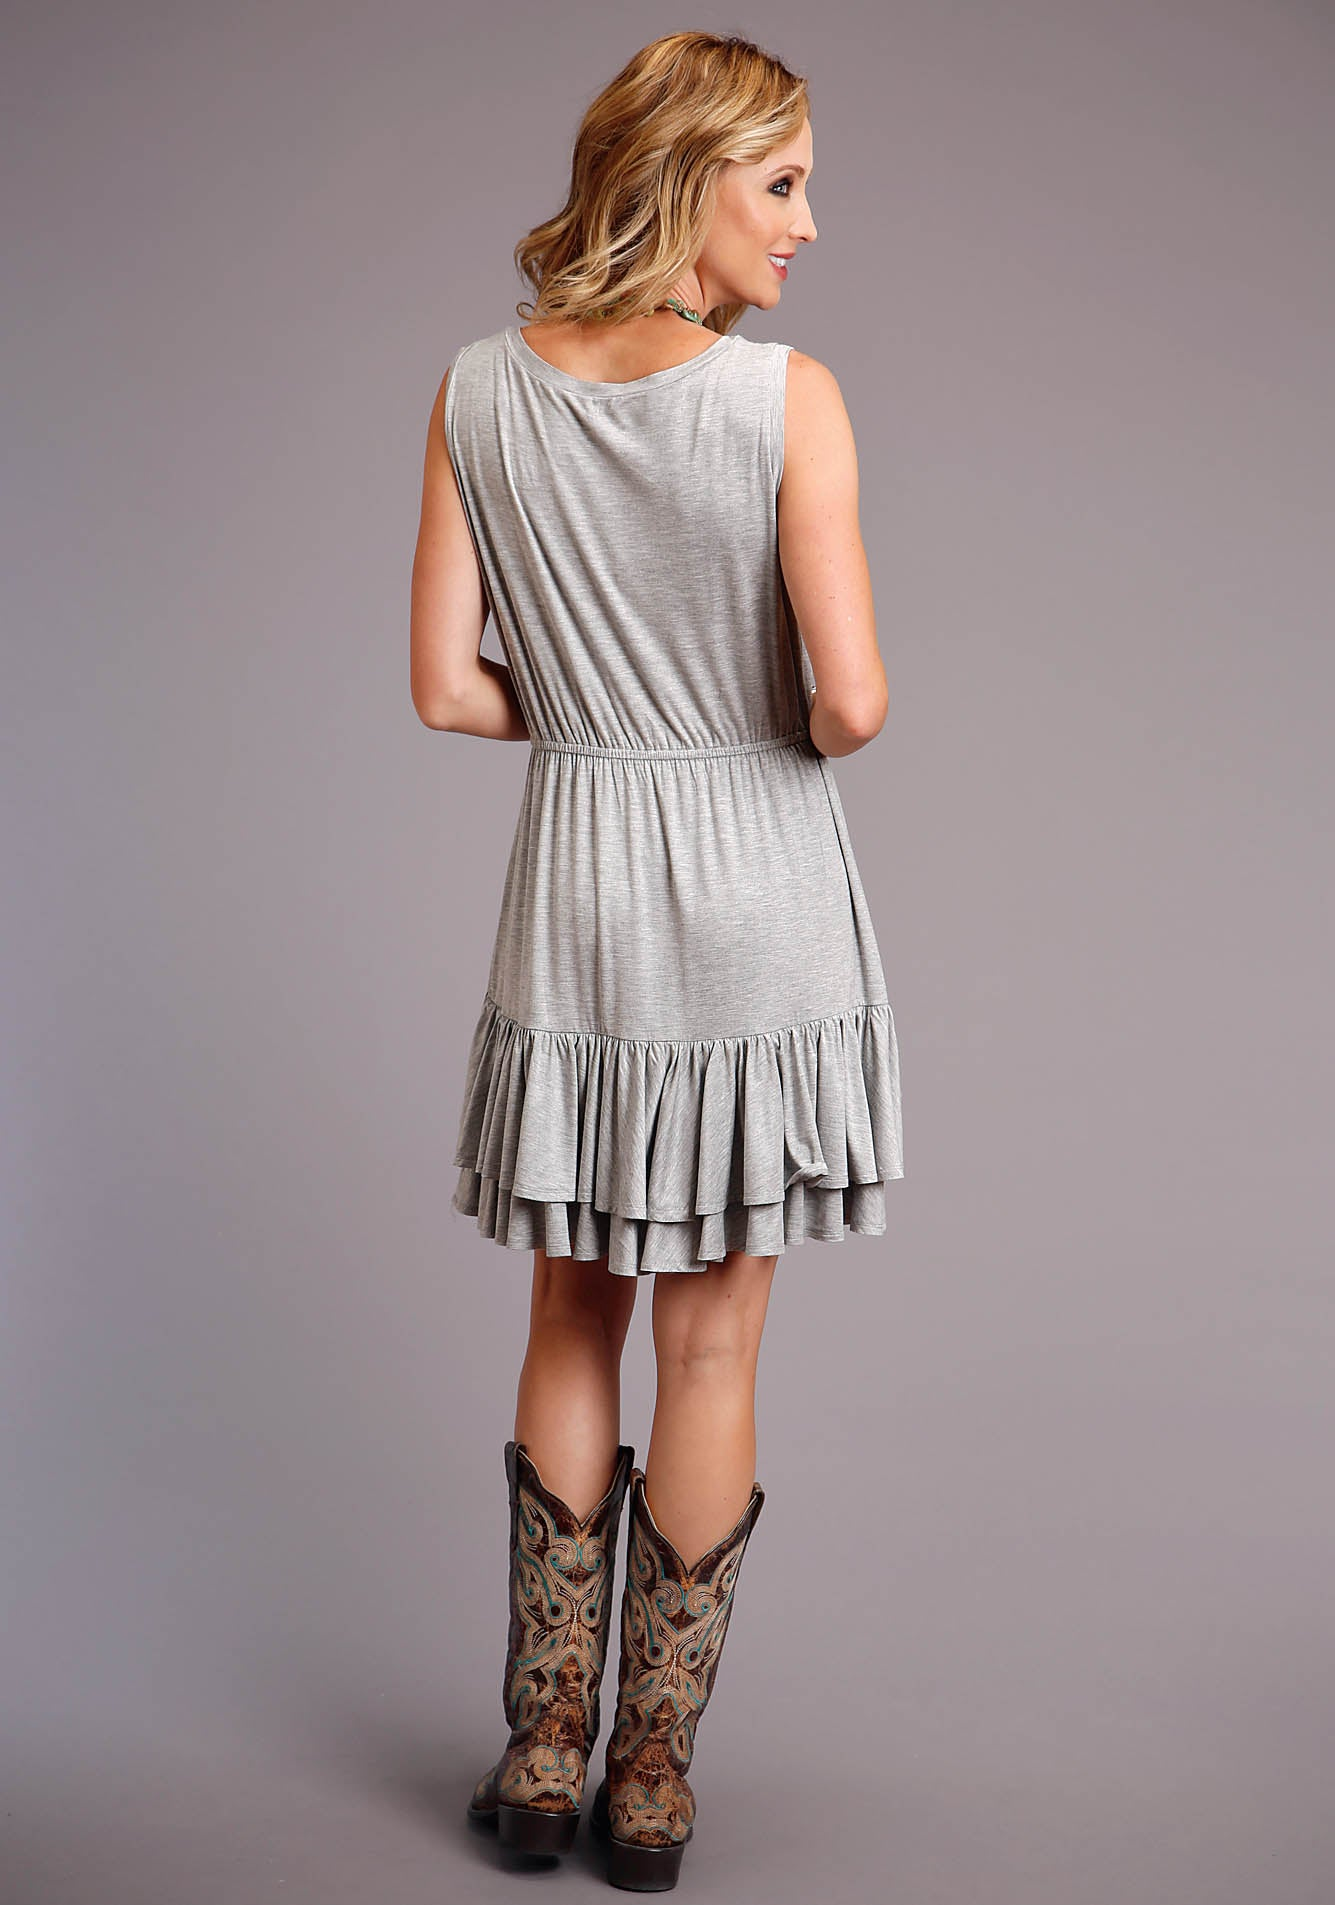 STETSON WOMENS GREY 00241 JERSEY KNIT TANK DRESS STETSON WOMEN'S COLLECTION - SUMMER I SHORT SLEEVE DRESS